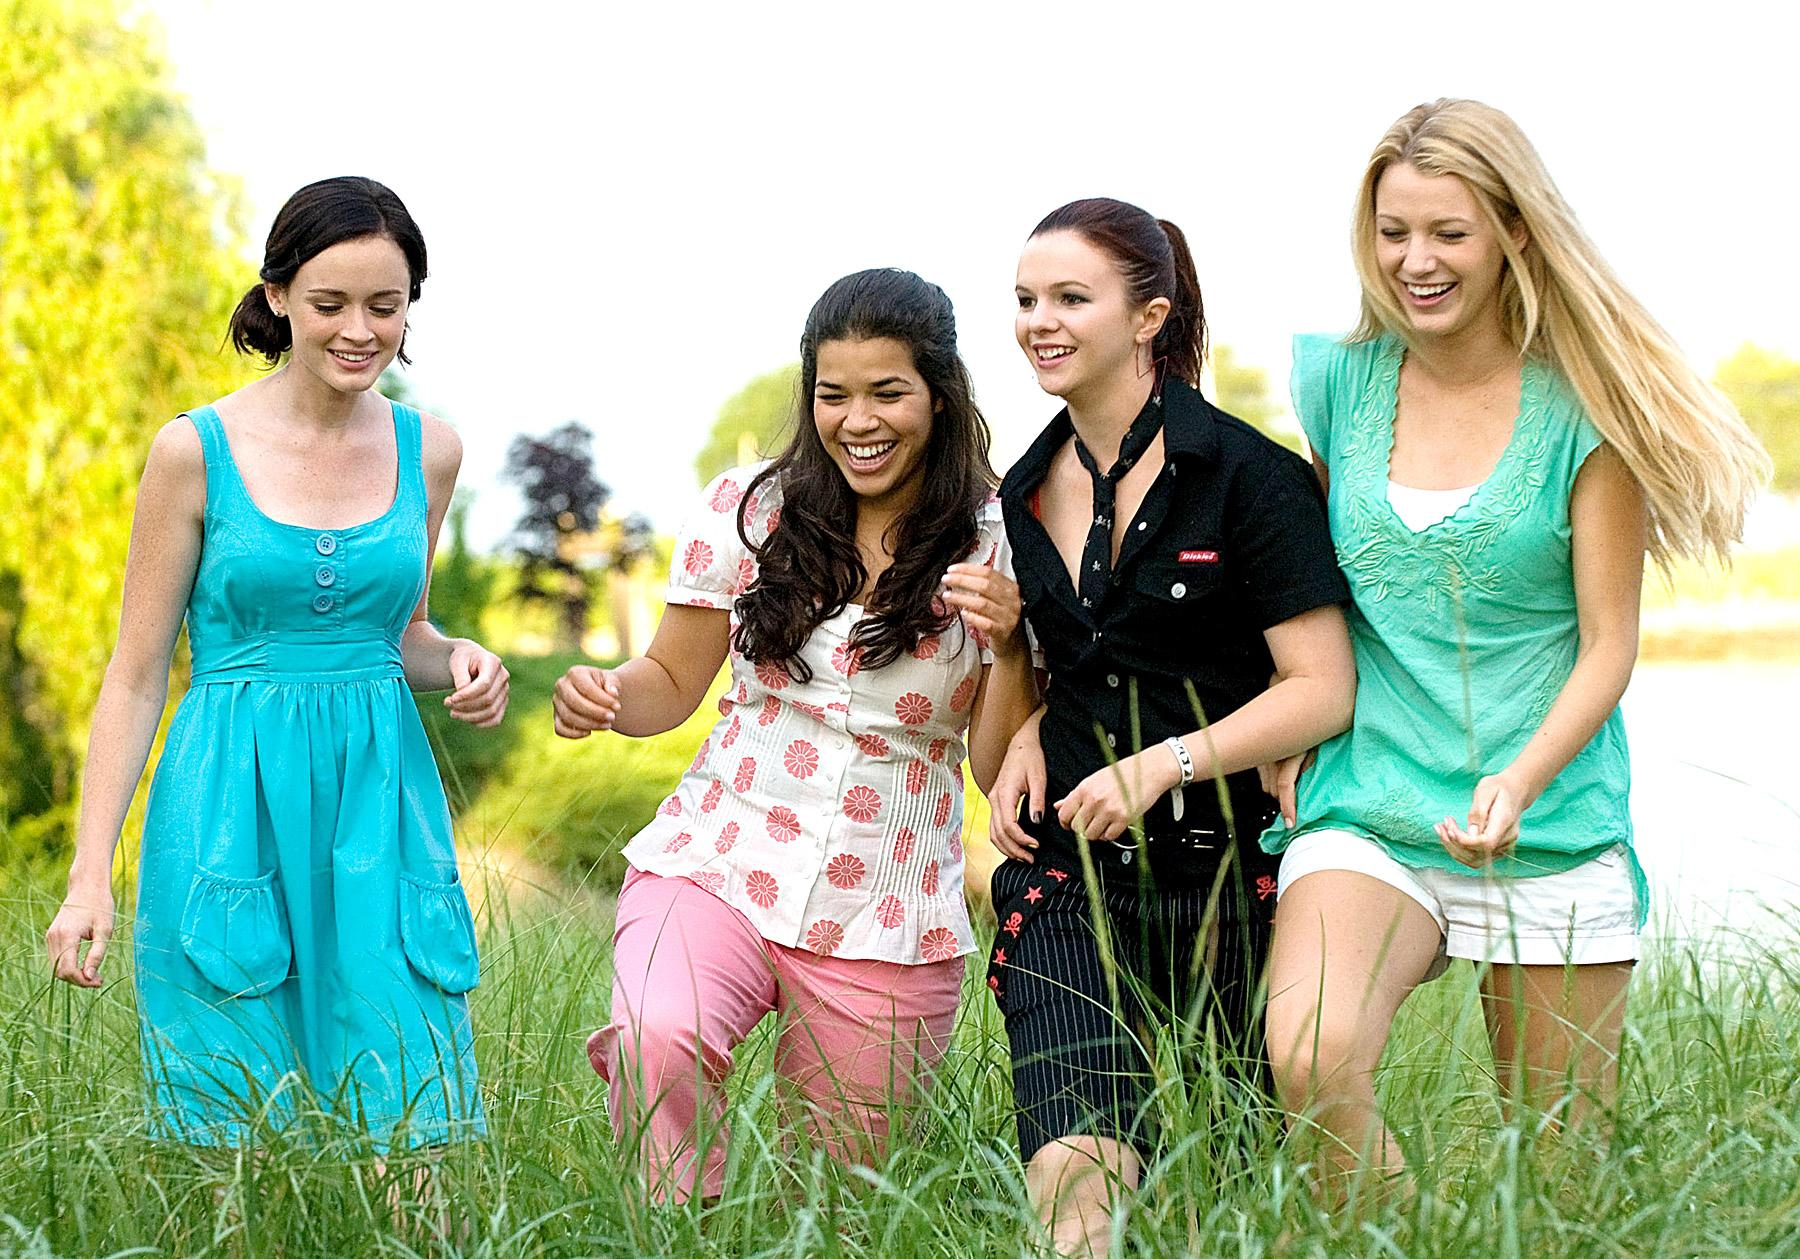 the sisterhood of the traveling pants The sisterhood of the traveling pants is a series of novels written by ann brasharesthey chronicle the summers of four teenage girls who share a pair of blue jeans which magically fit all four.